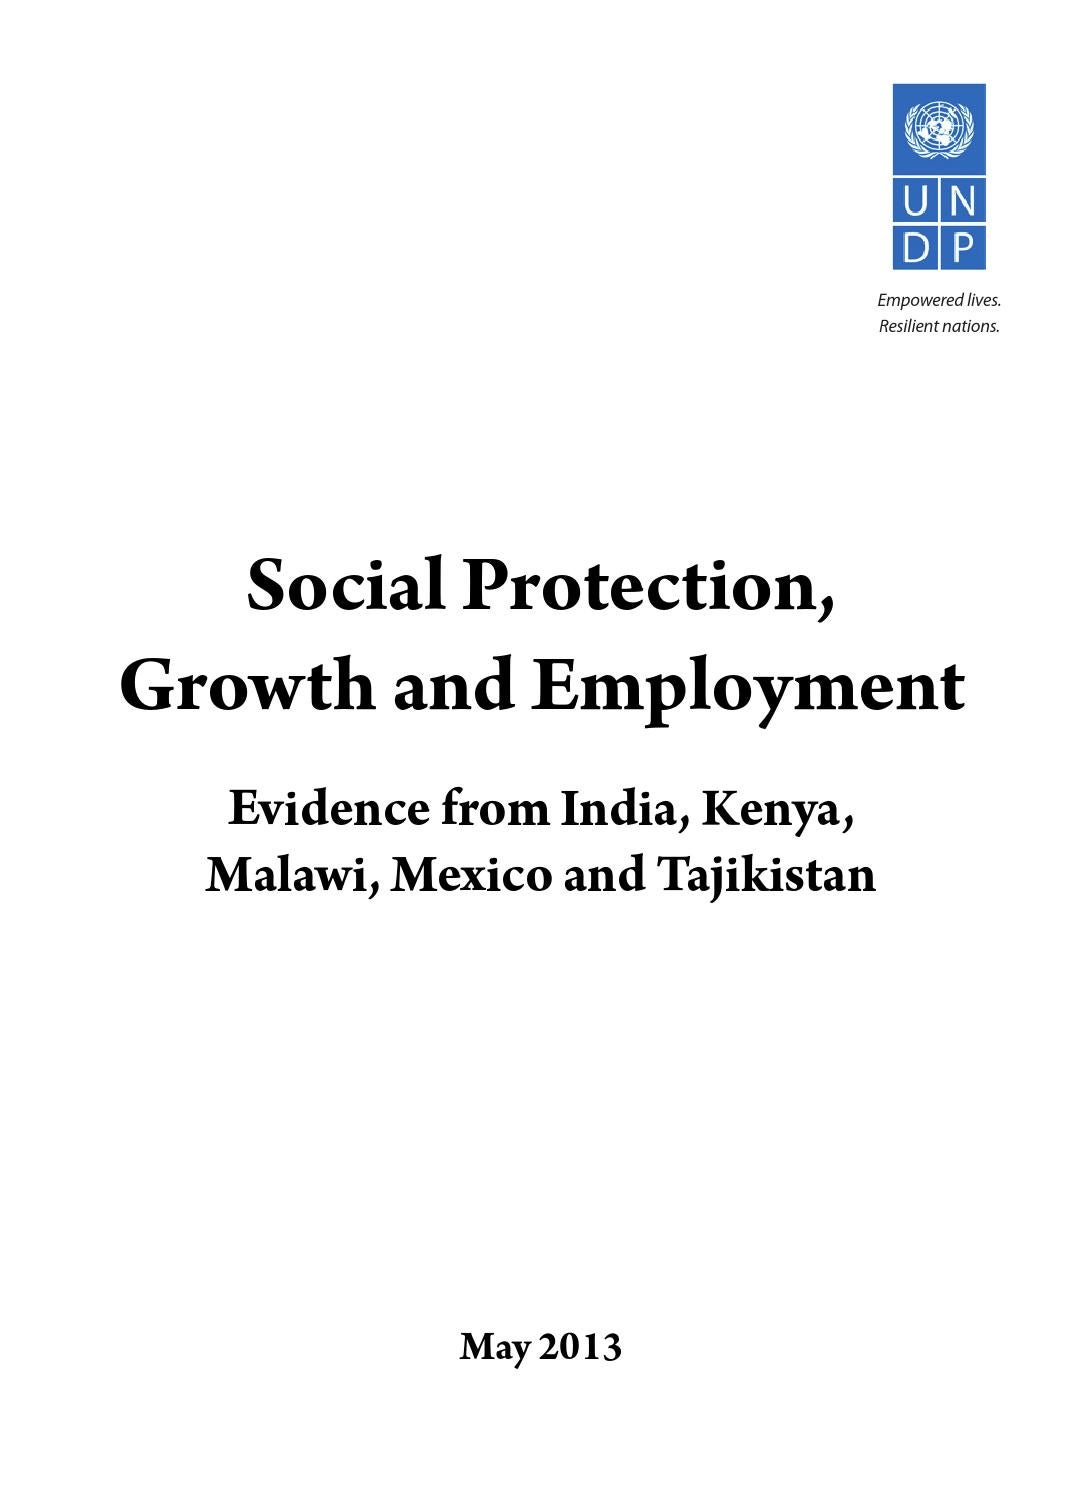 Social Protection Growth And Employment By United Nations